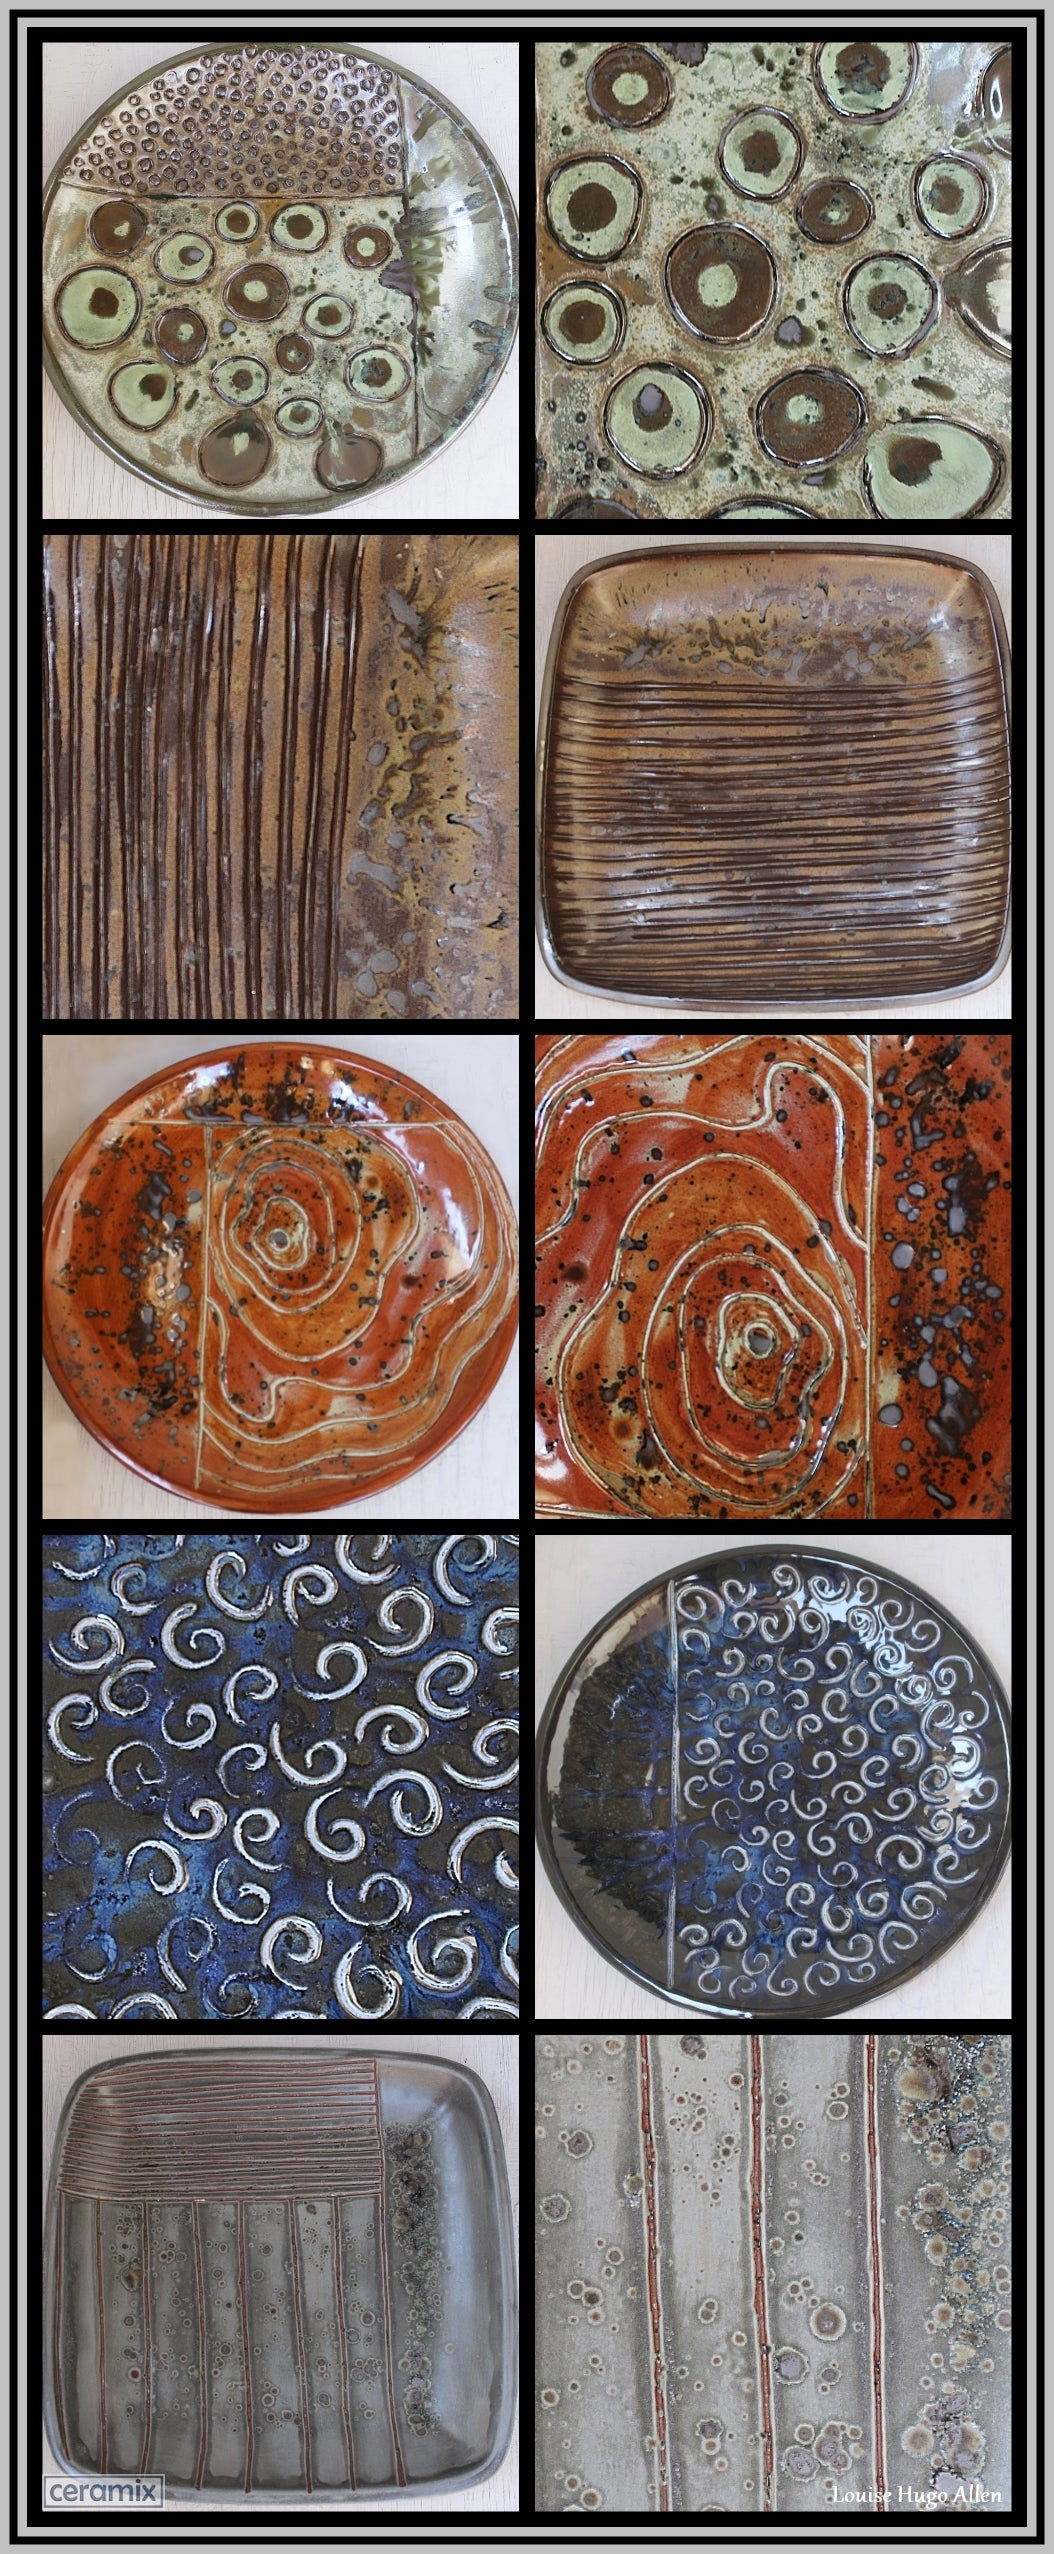 5 Handmade Stoneware platters by Margaret Melville at the Ceramix pottery in South Africa.